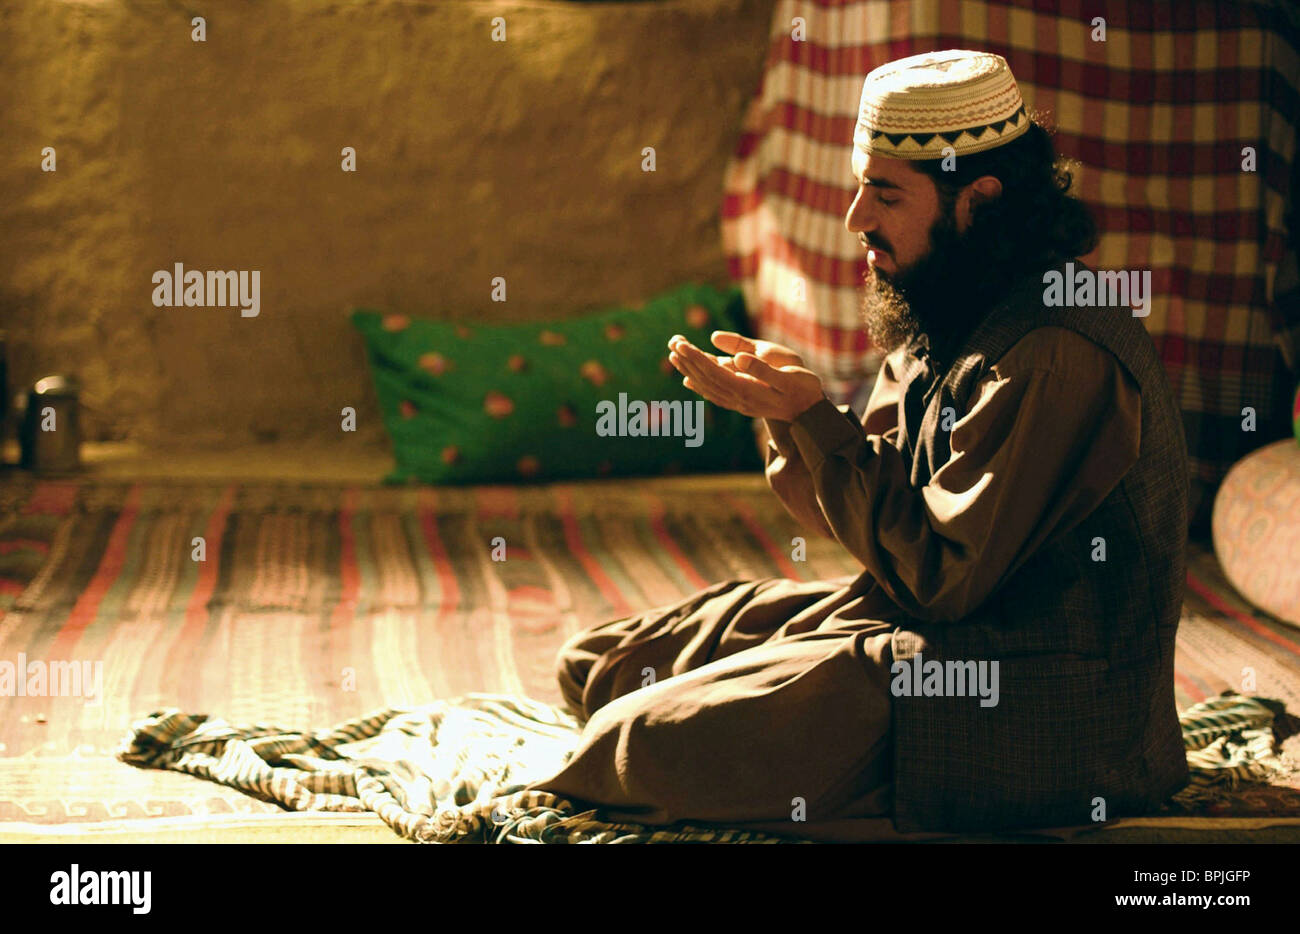 MOSLEM PRAYER SCENE SILENCE BETWEEN TWO THOUGHTS (2003) - Stock Image